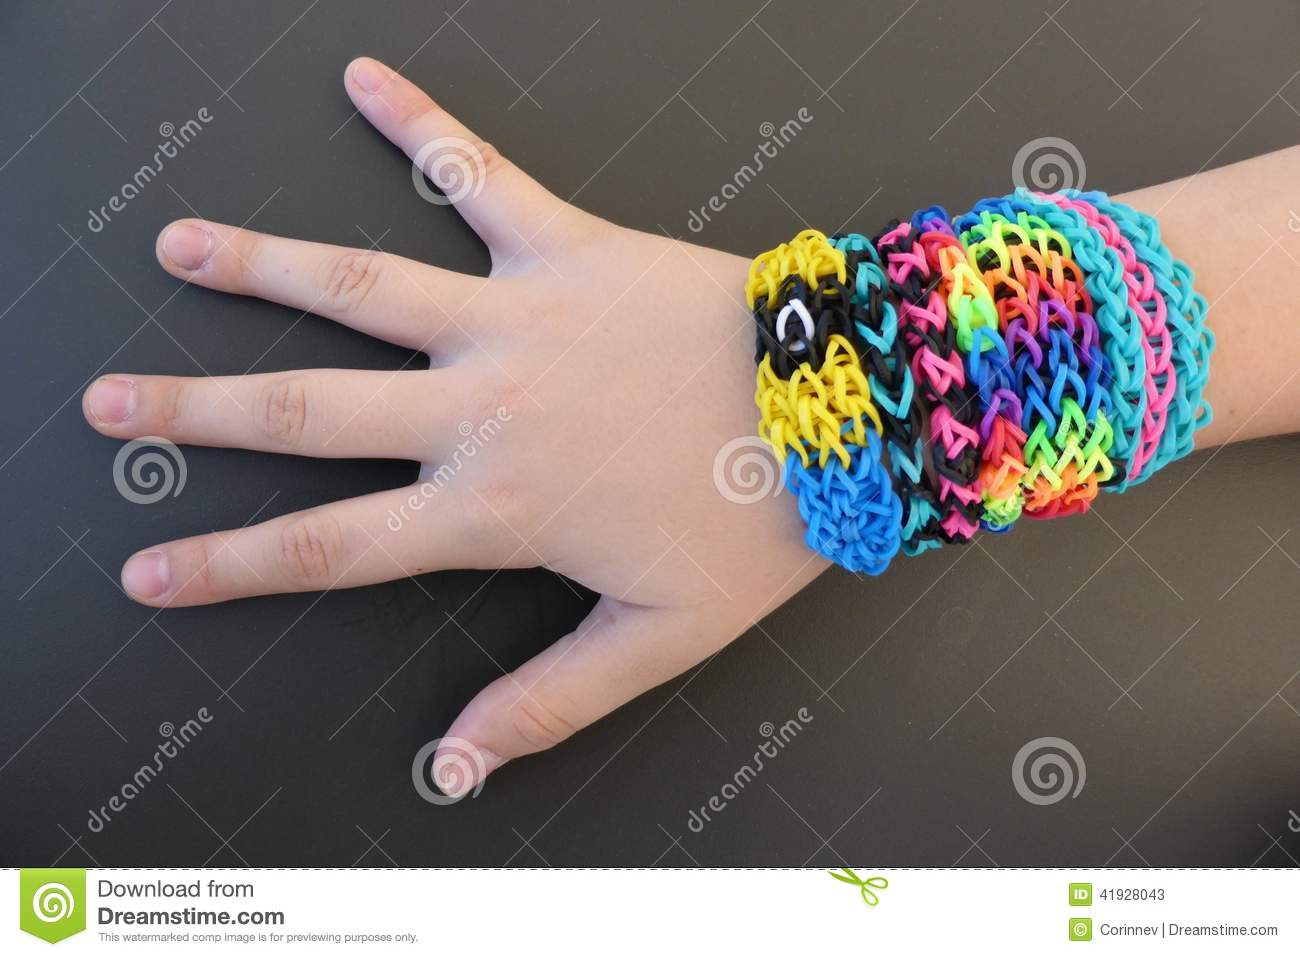 Loom Band Bracelets On A Young Girl\'s Arm Stock Image - Image of ...